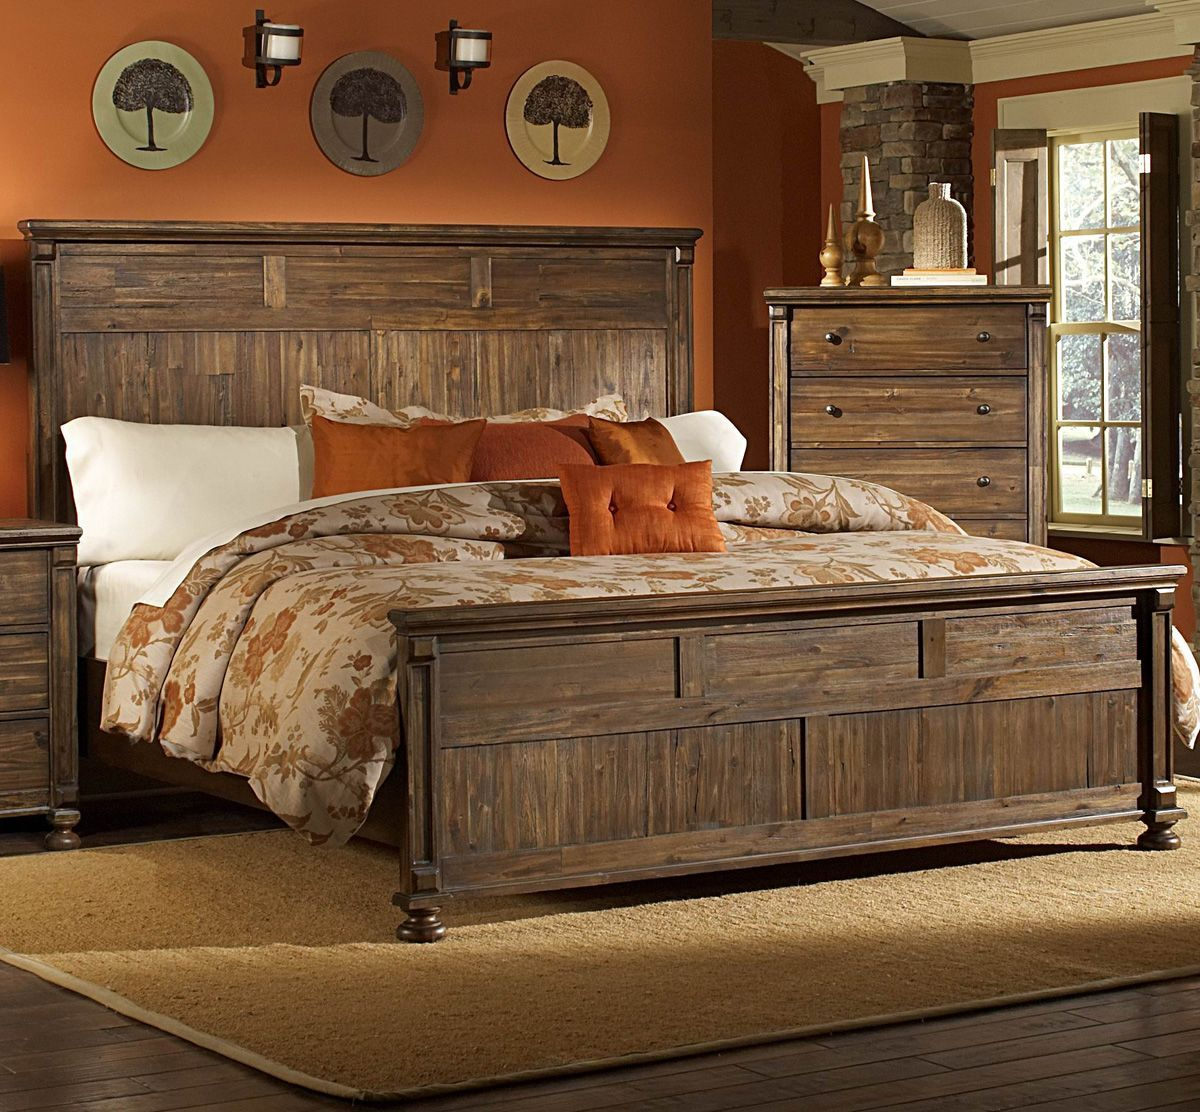 Bedroom Decor With Images Rustic Bedroom Sets Rustic Bedroom